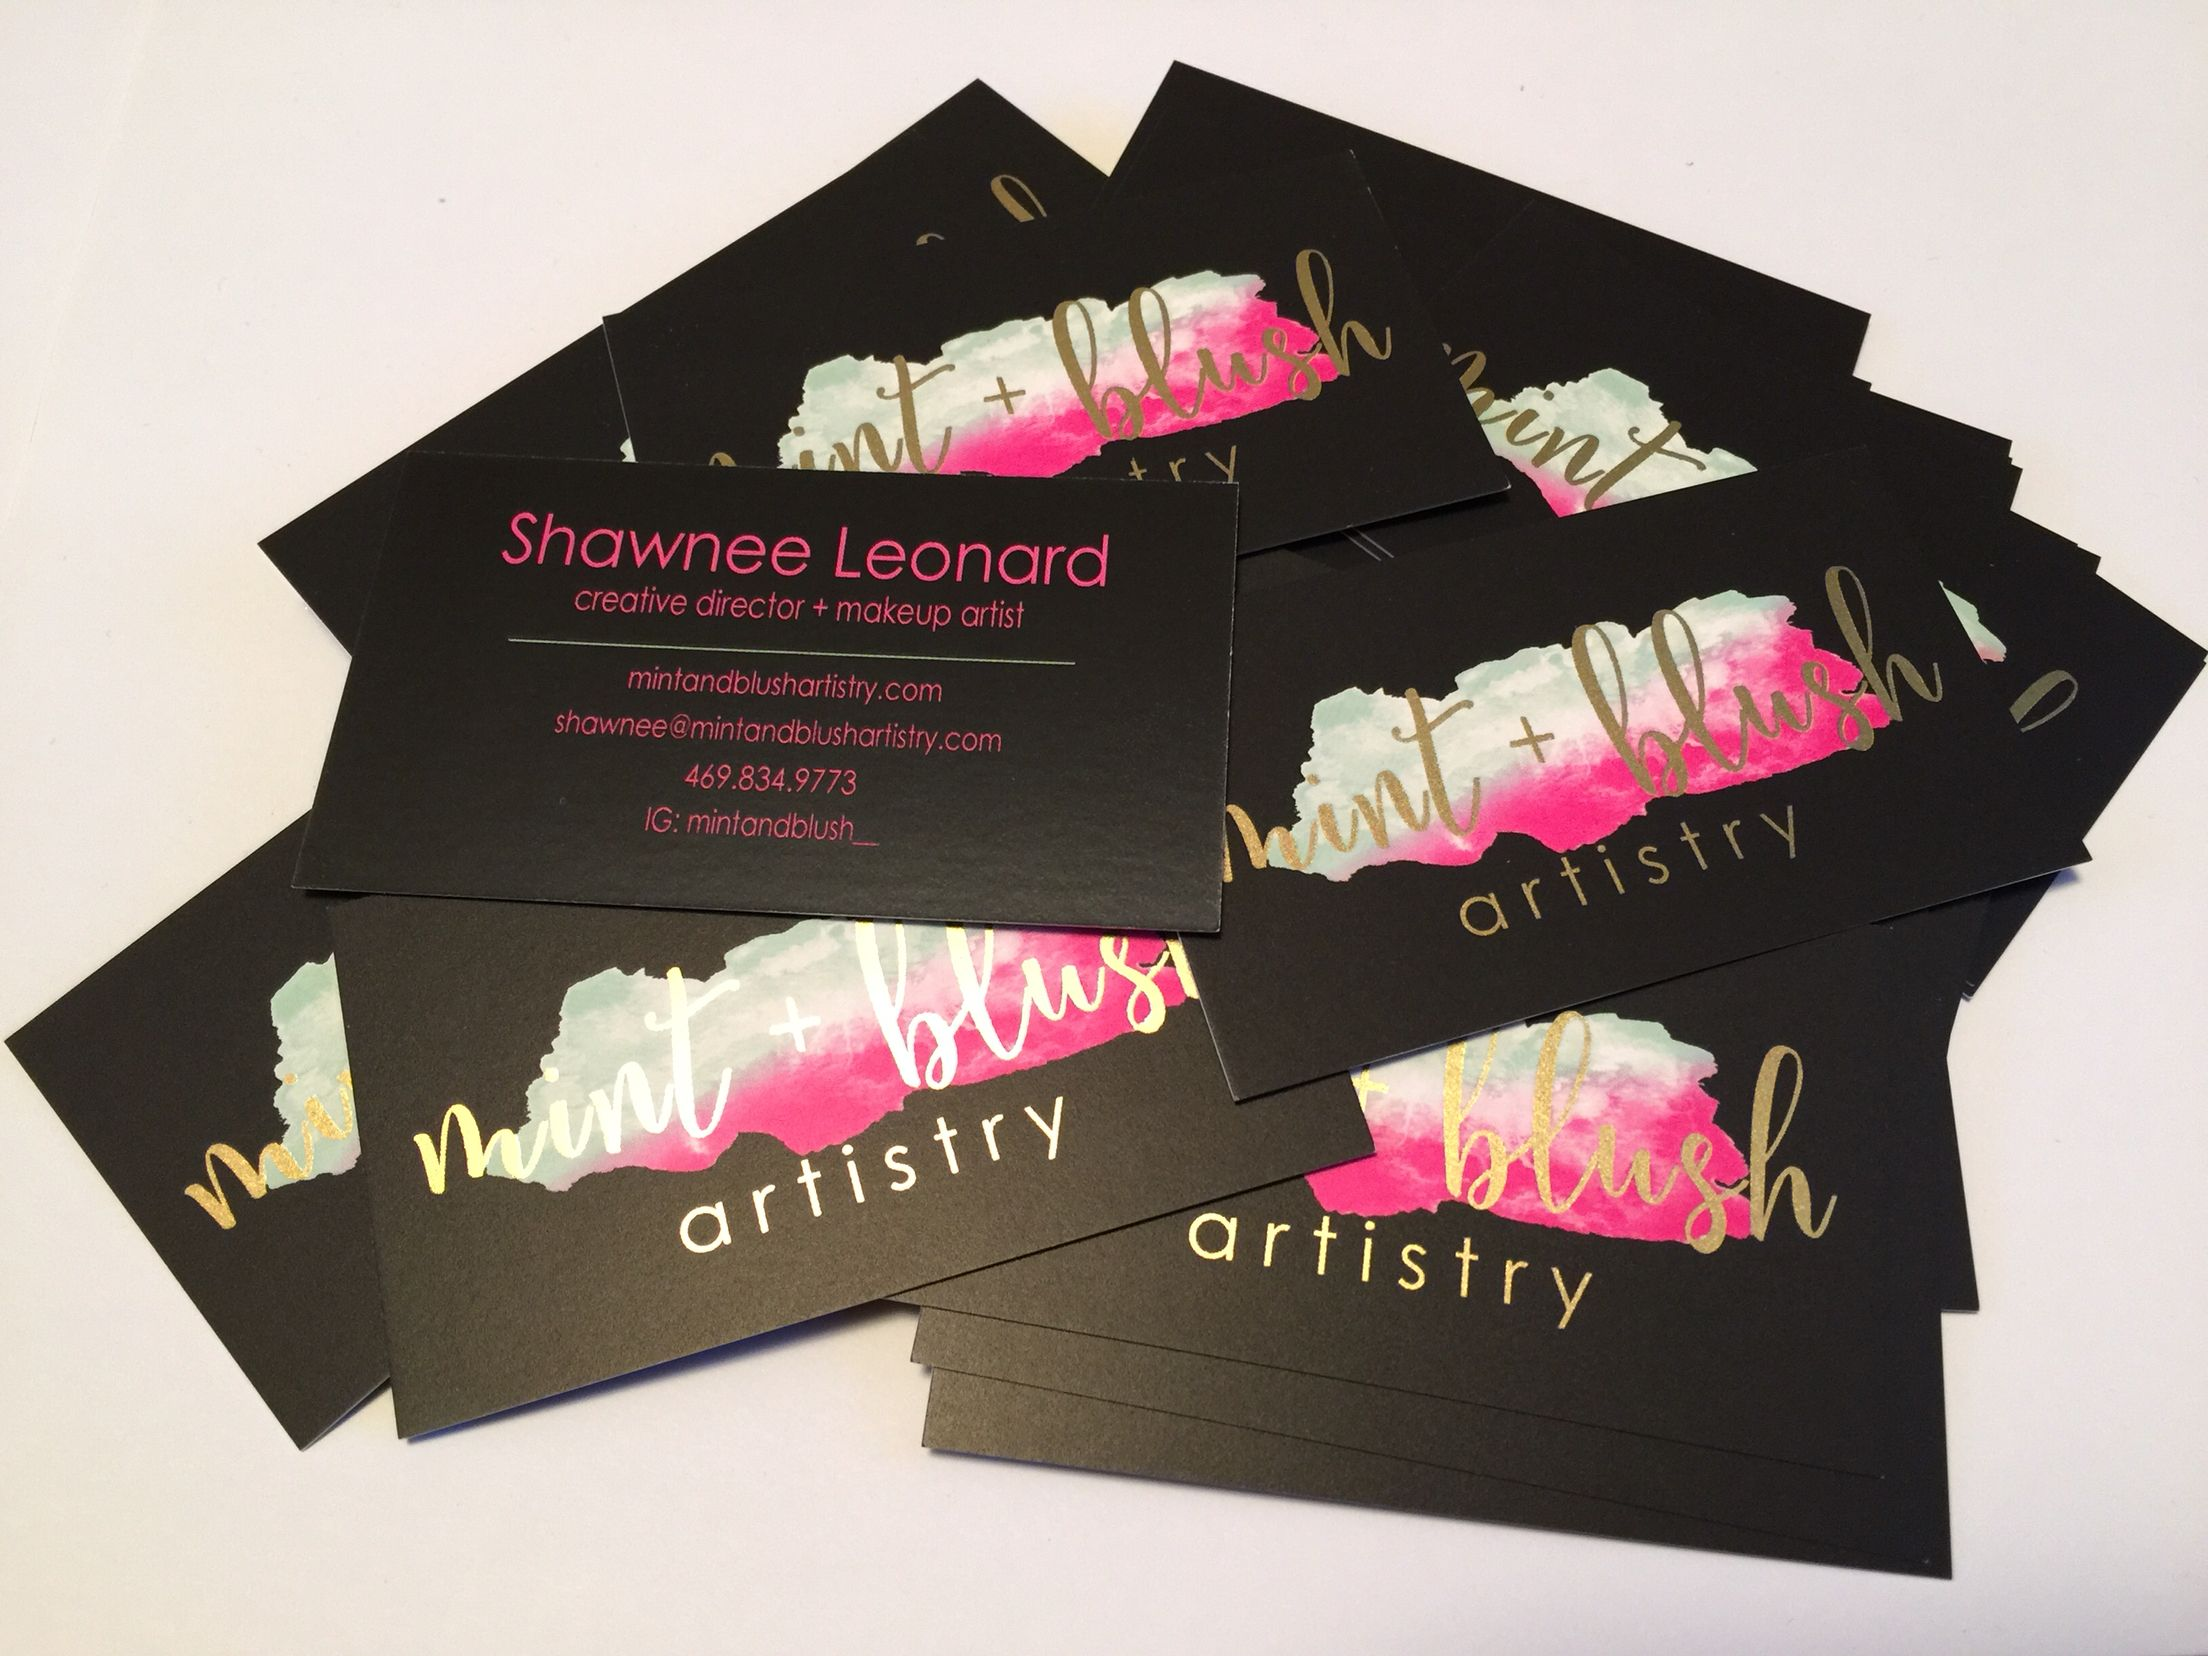 Custom business cards designed by artsy print designs custom business cards designed by artsy print designs vistaprint apdesigns15 mintandblushartistry magicingreecefo Gallery